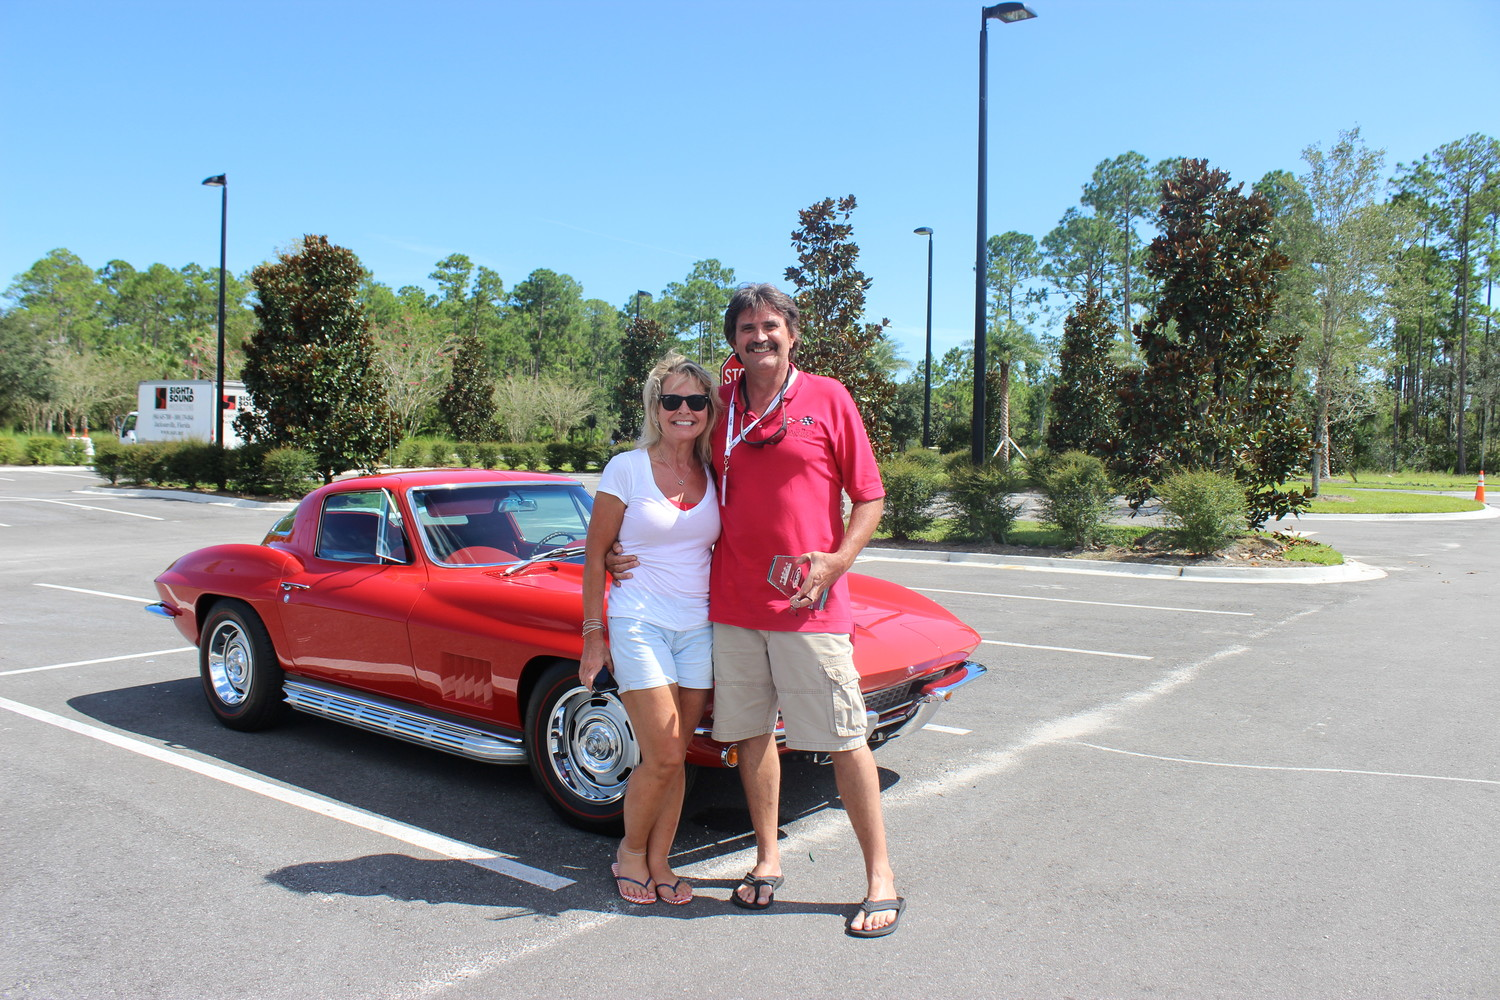 Michael Lucas and his 1967 Chevrolet Corvette was the winner of the Most Outstanding Corvette award, sponsored by EuroSpec.